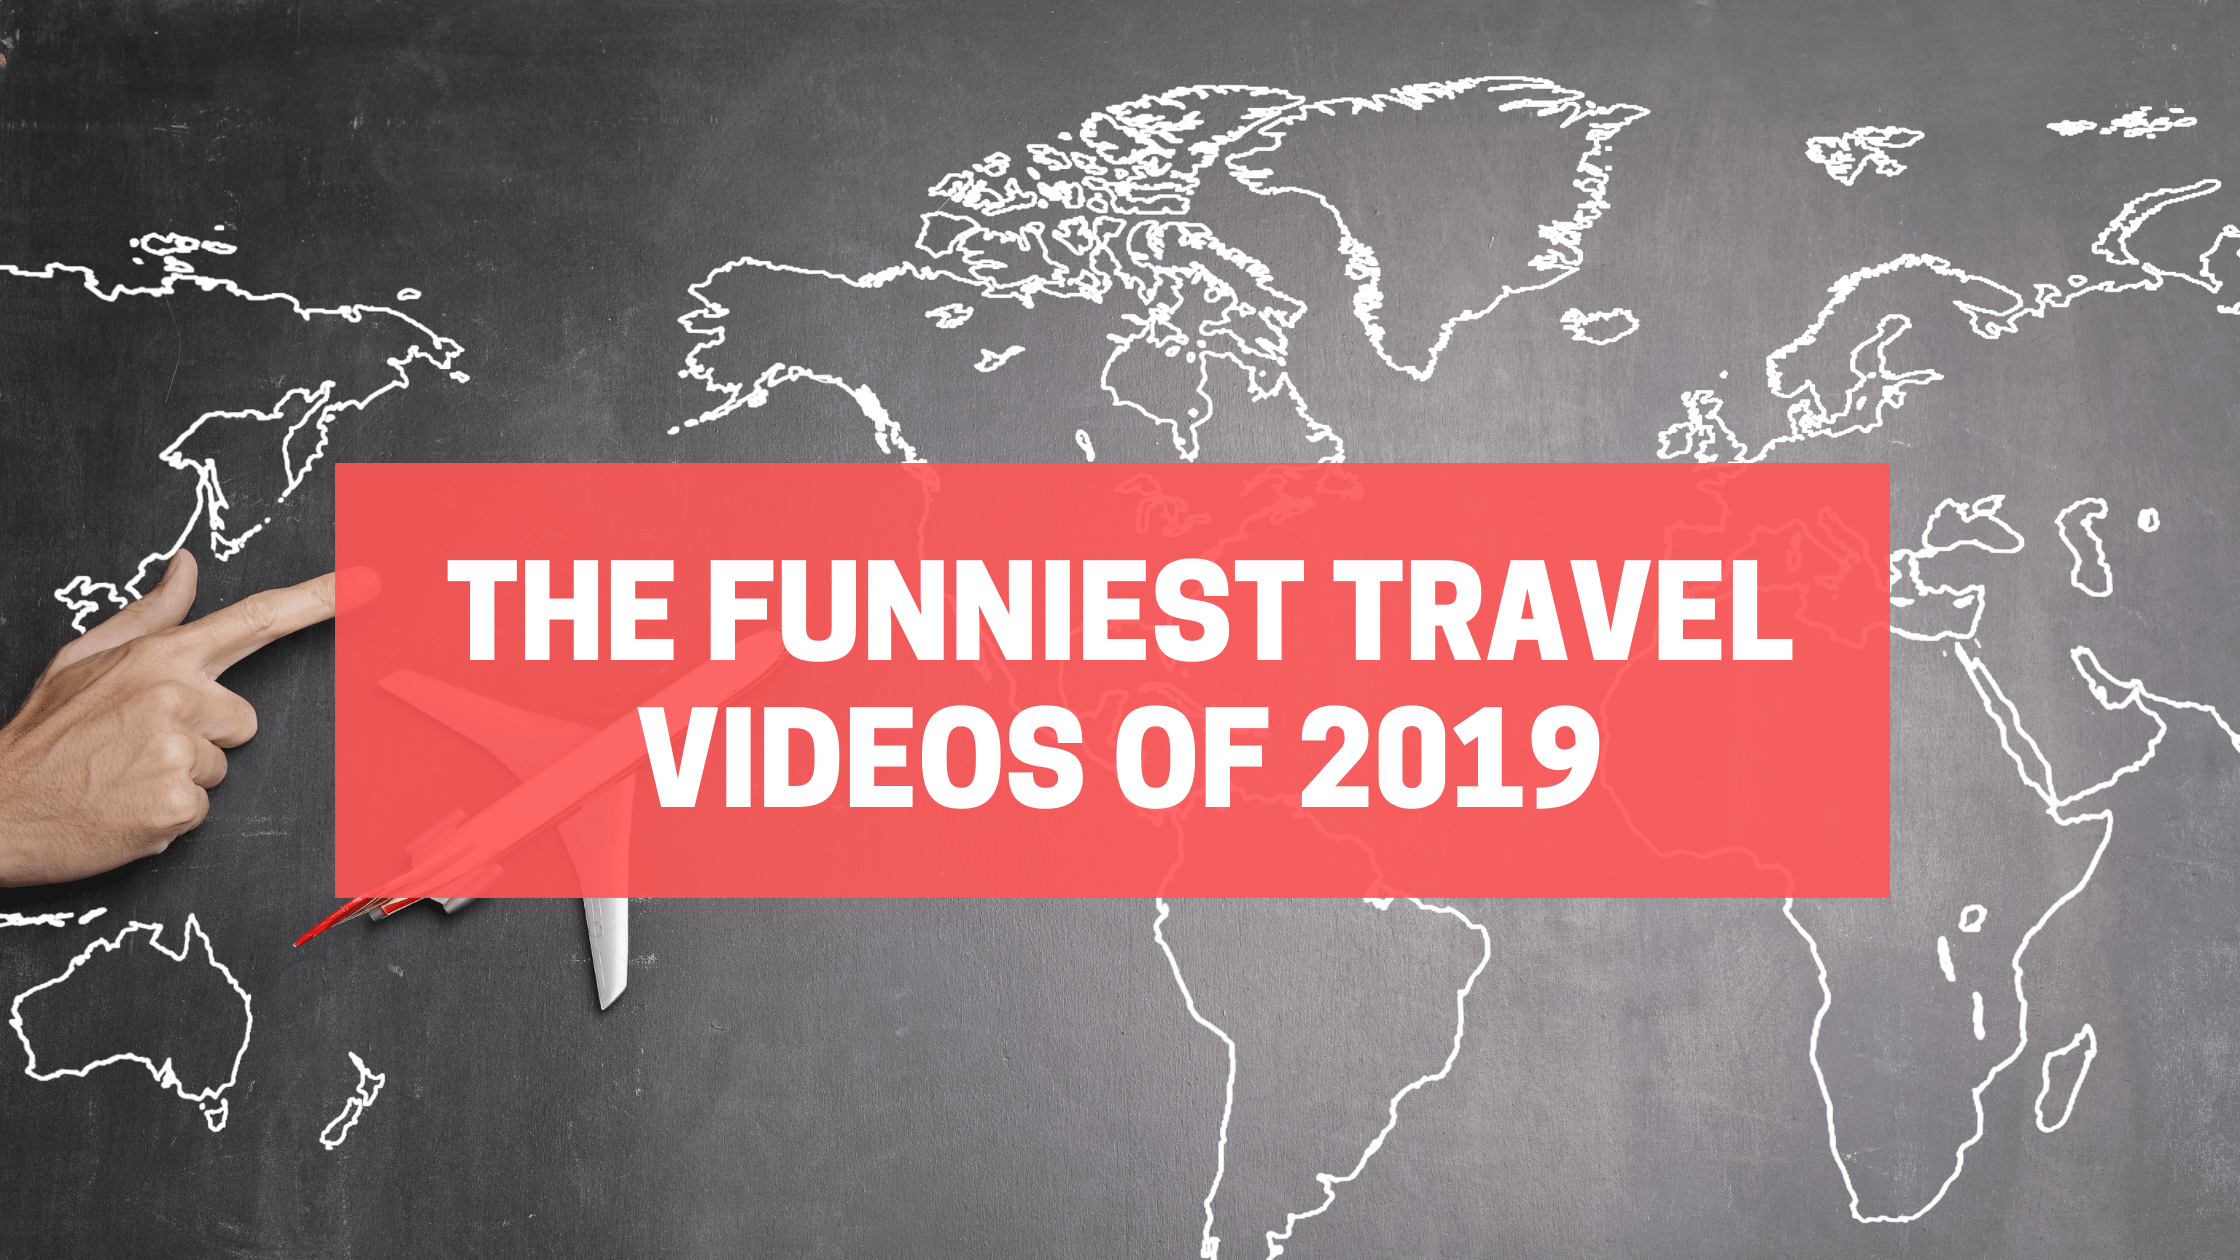 The Funniest Travel Videos of 2019